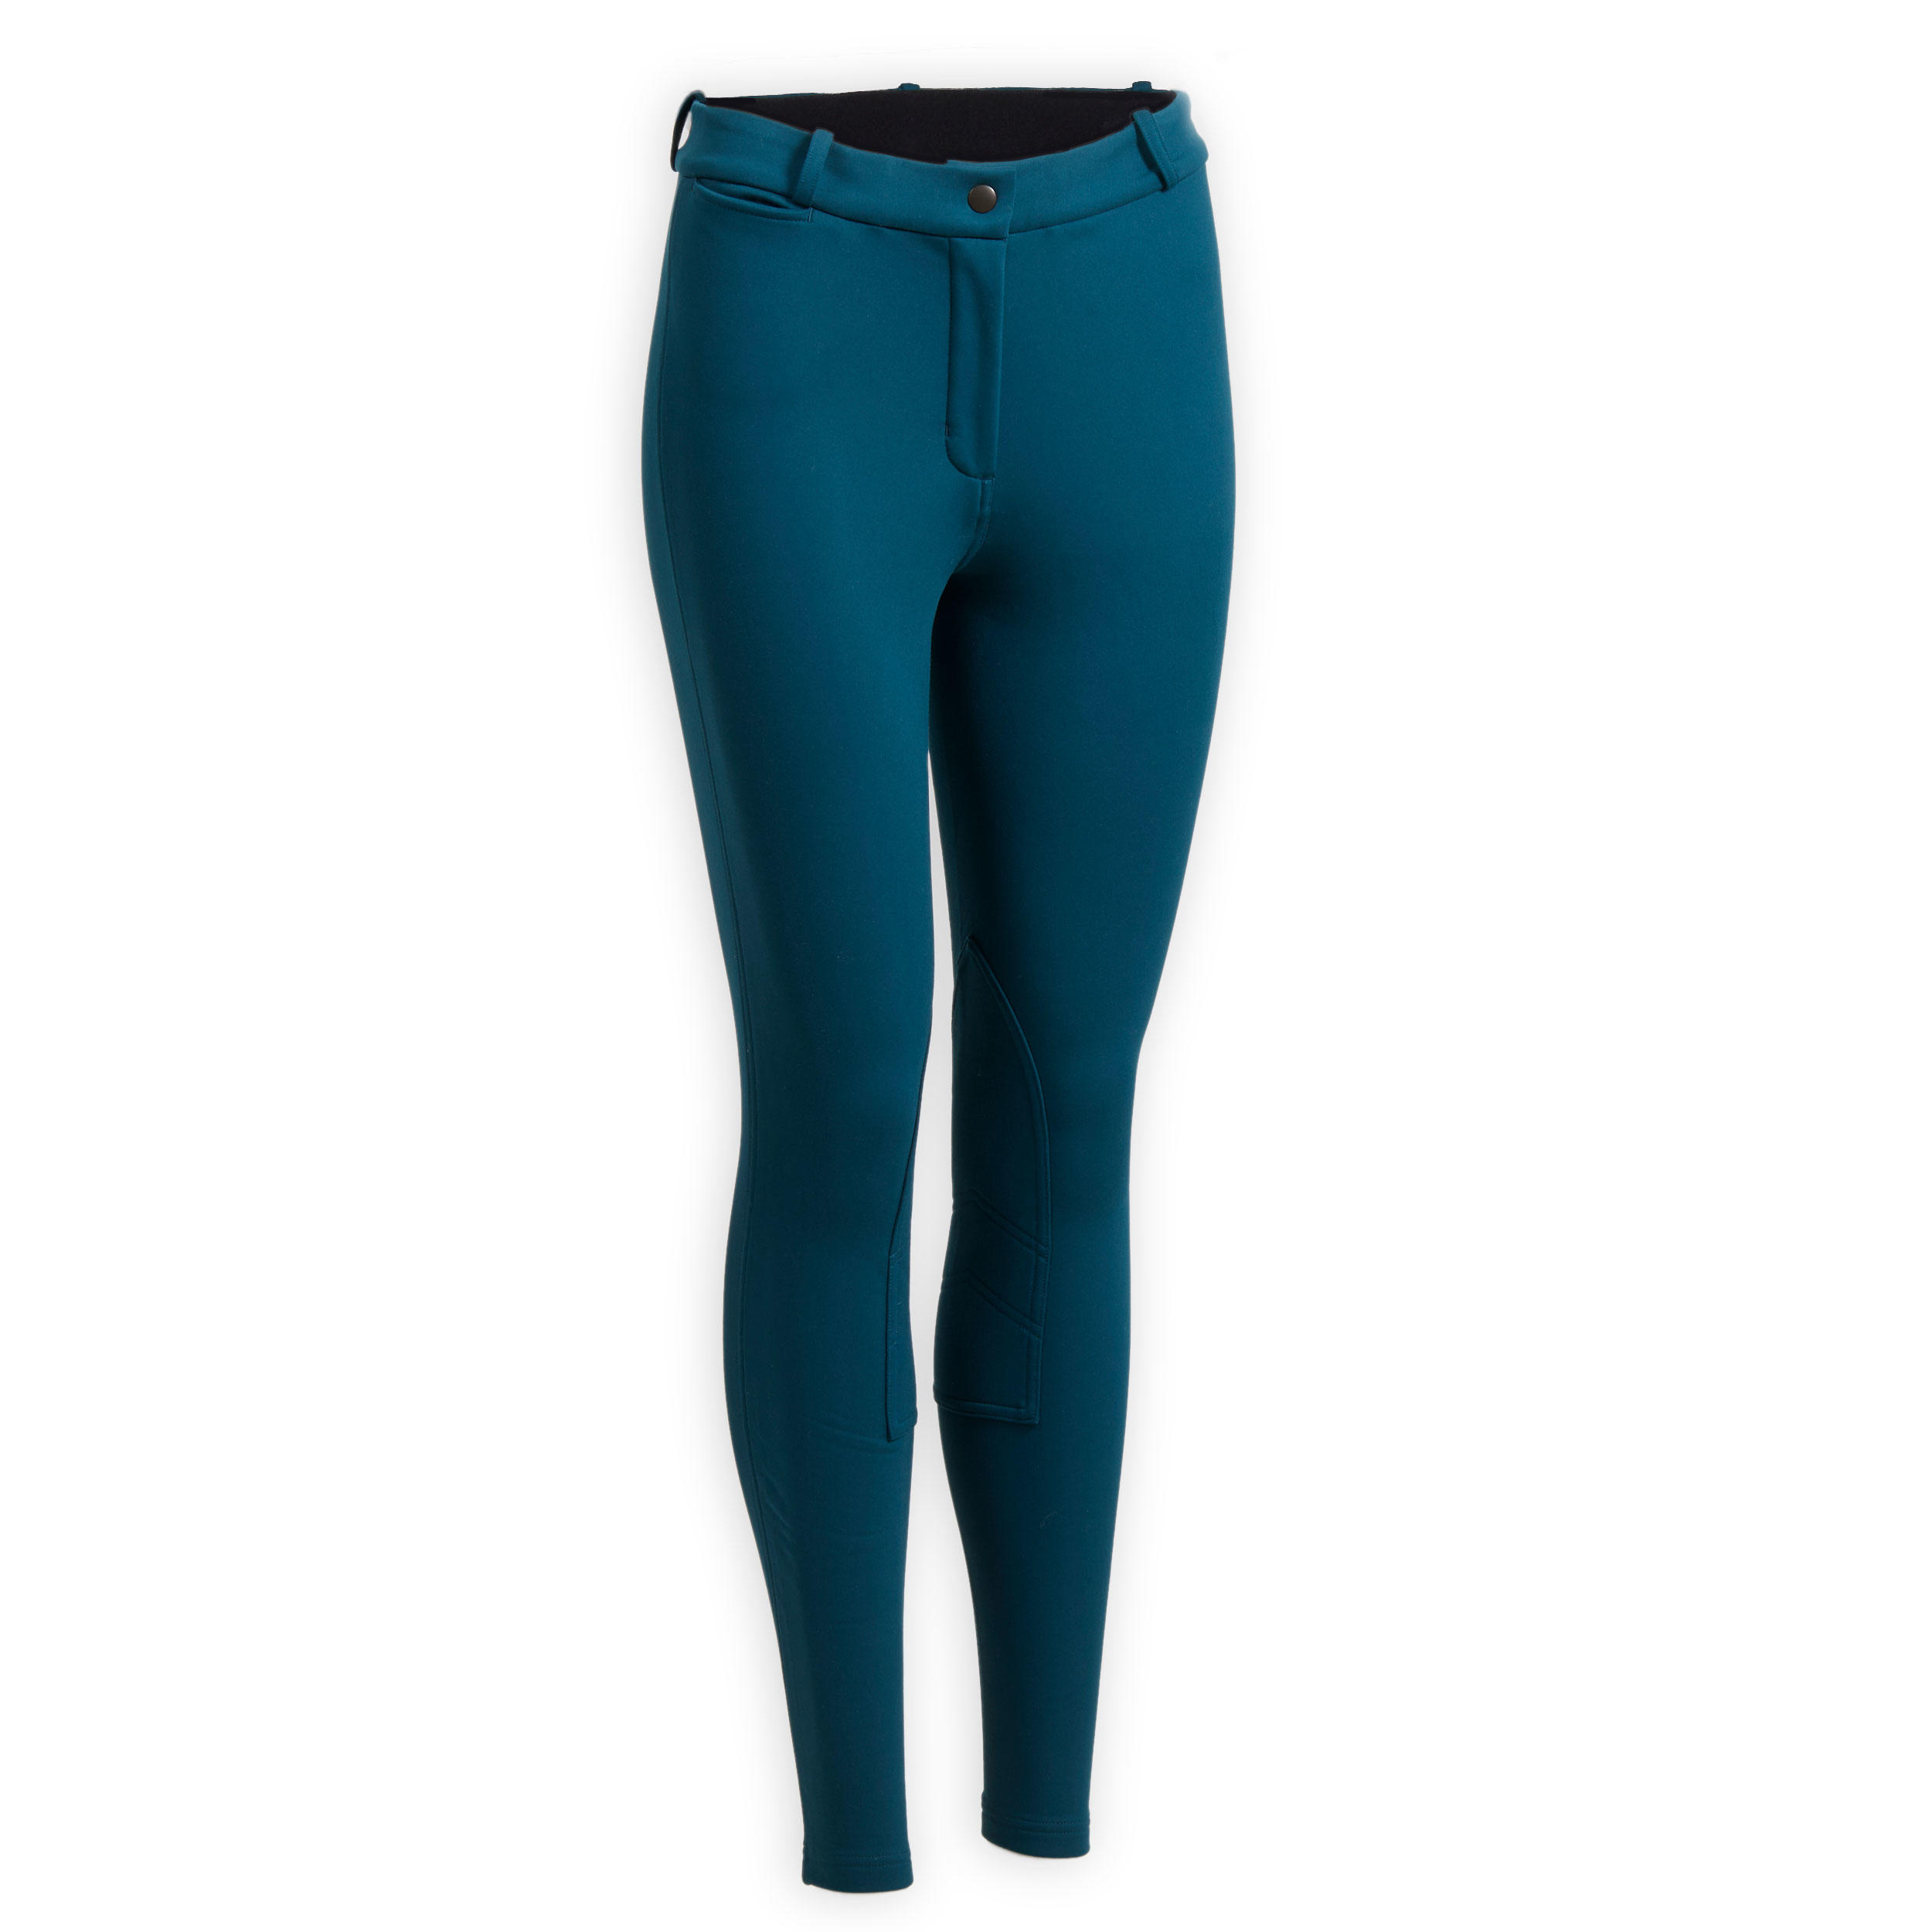 Pantalon 100 WARM damă imagine produs